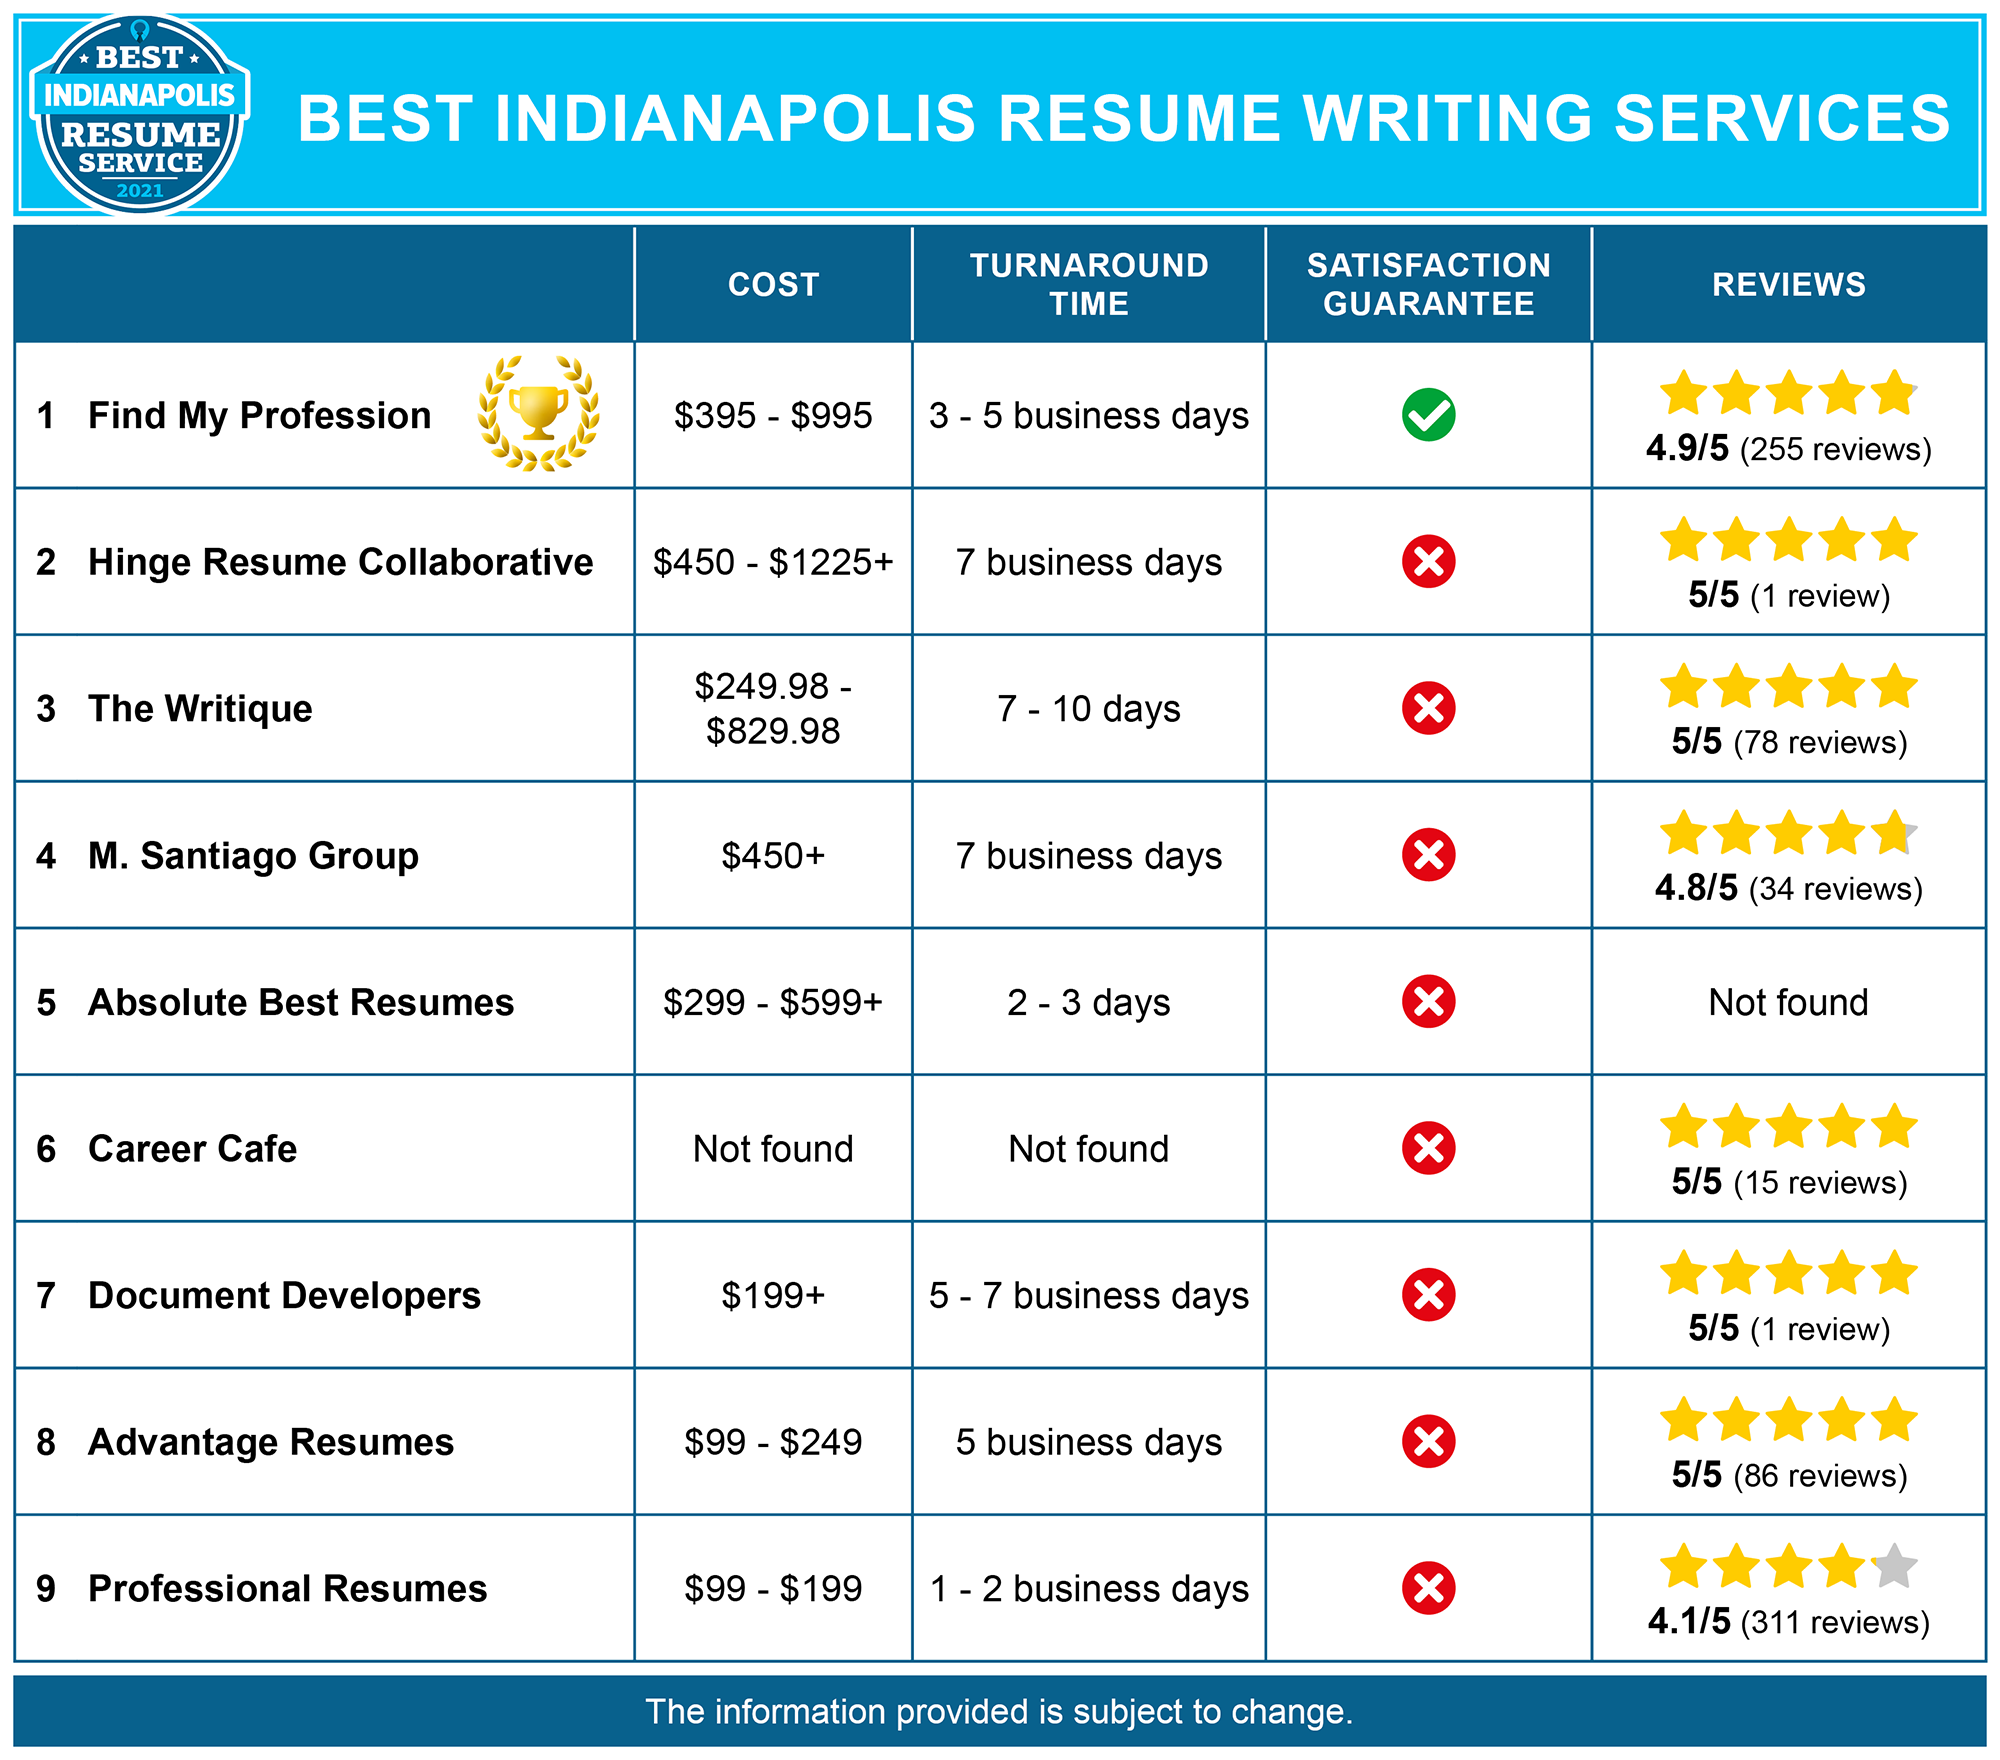 9 Best Resume Writing Services in Indianapolis, IN